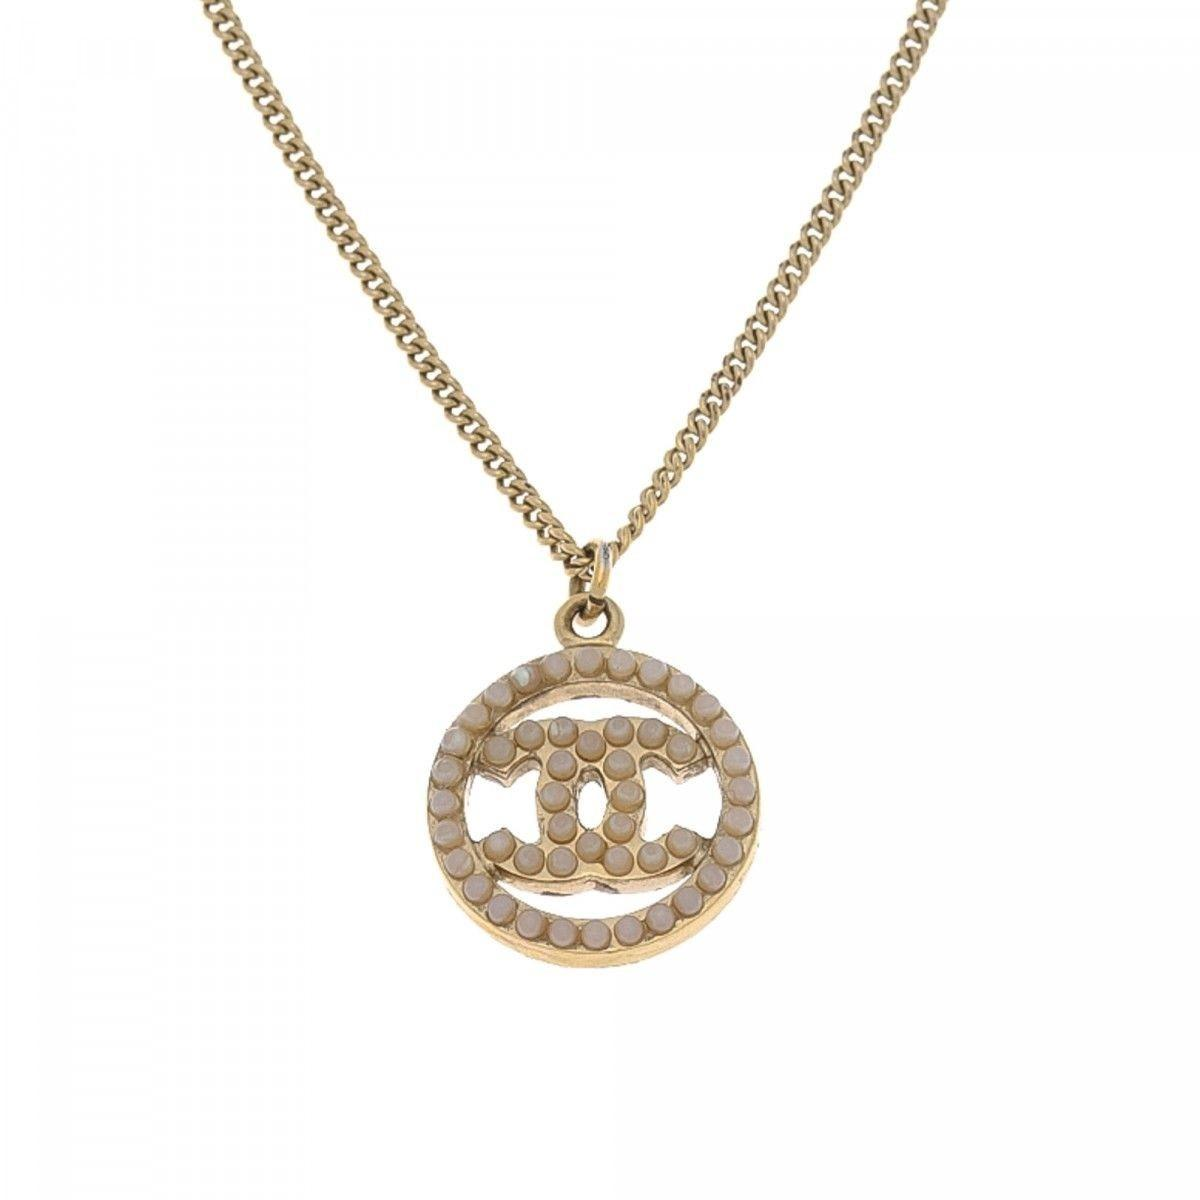 Chanel Necklace Fancy Idea Inspiration